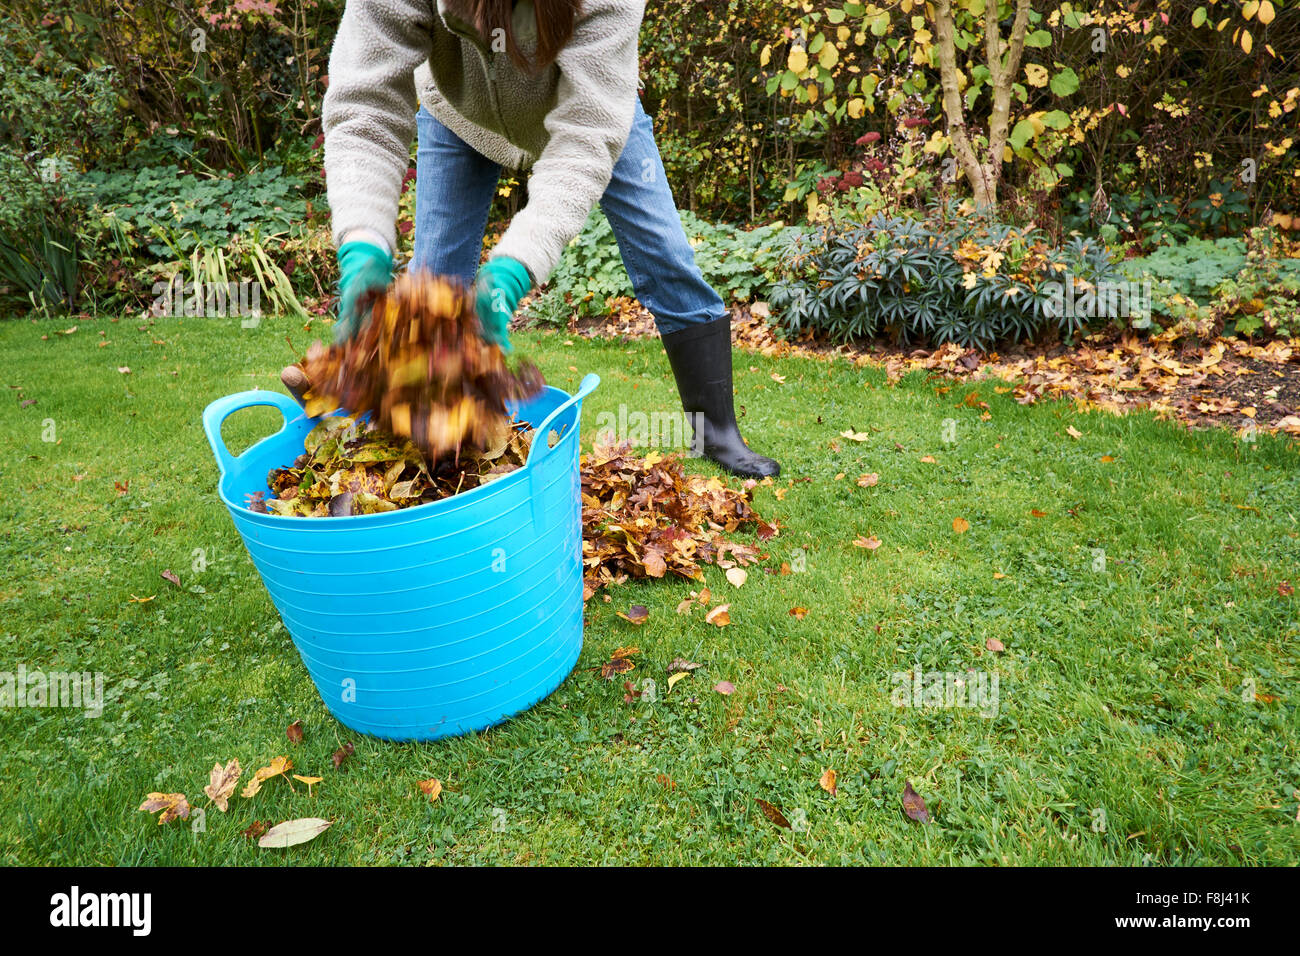 Female gathering autumn leaves to make leave mould compost. Stock Photo